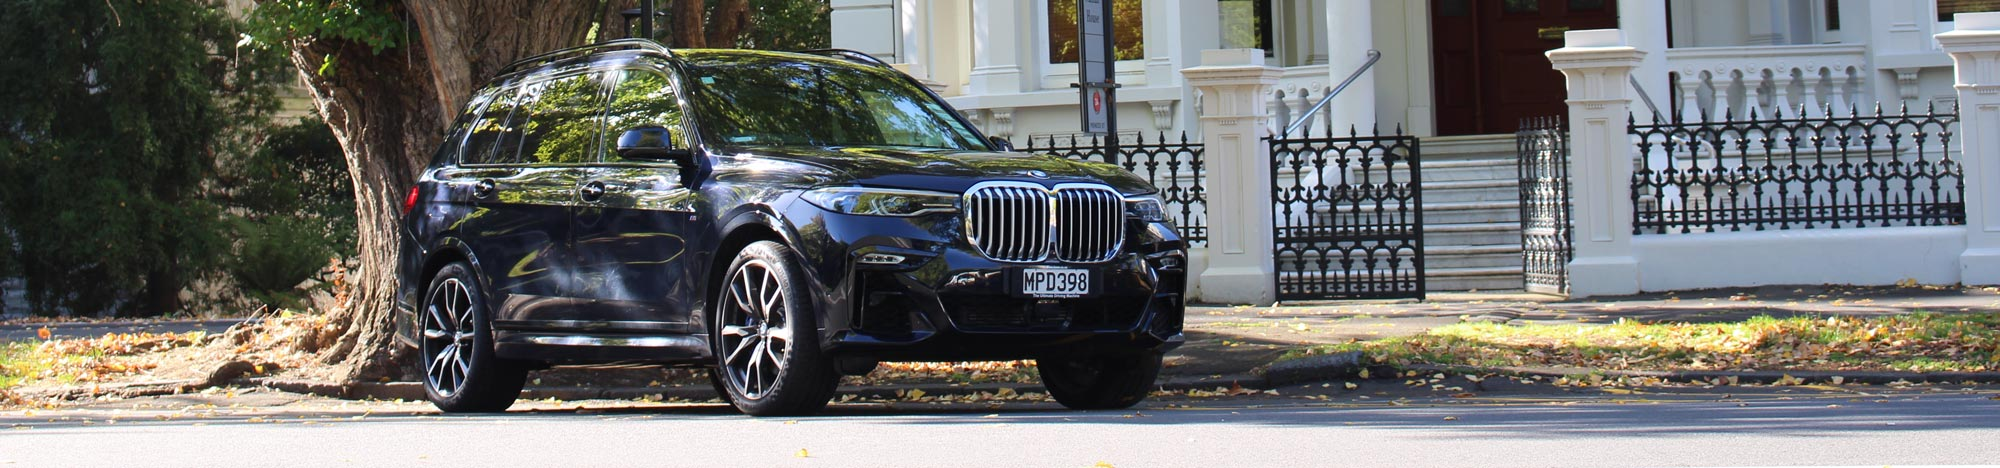 Book luxury chauffeur service with Marquee Limousines in Auckland and Sydney.